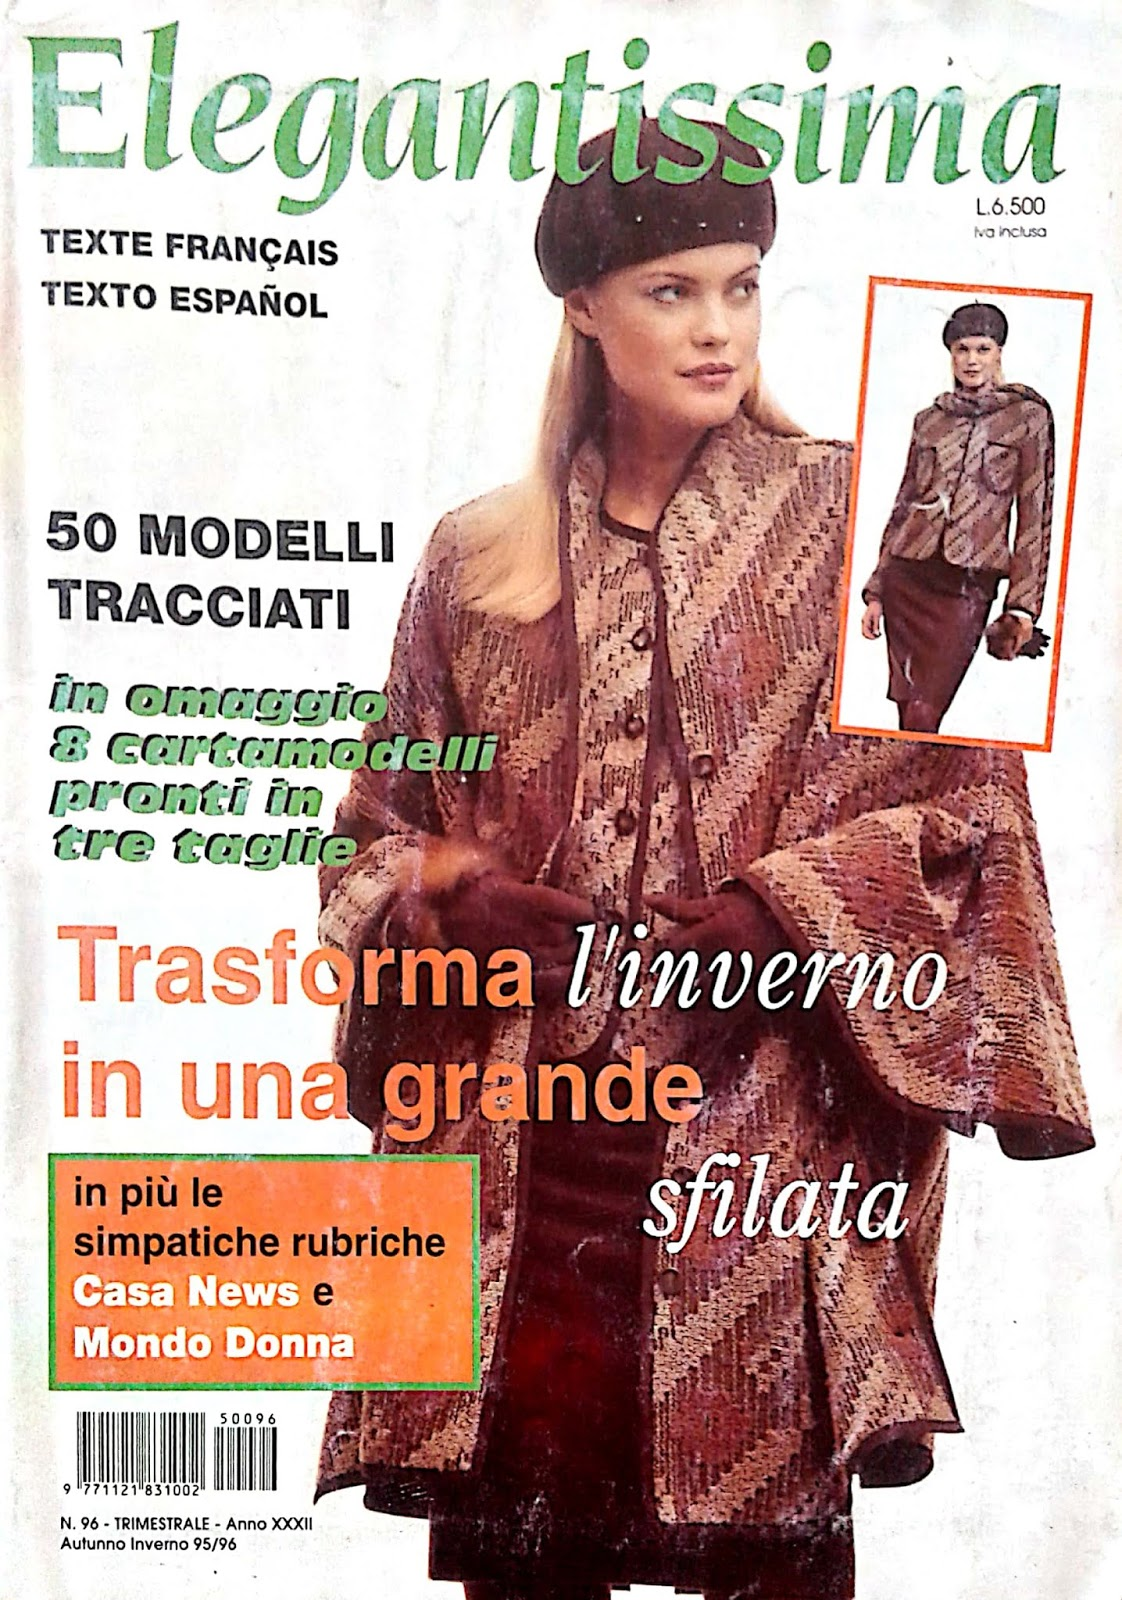 d40e0263b0c09 Download elegantissima magazine ~ تعليم خياطة-Learn sewing